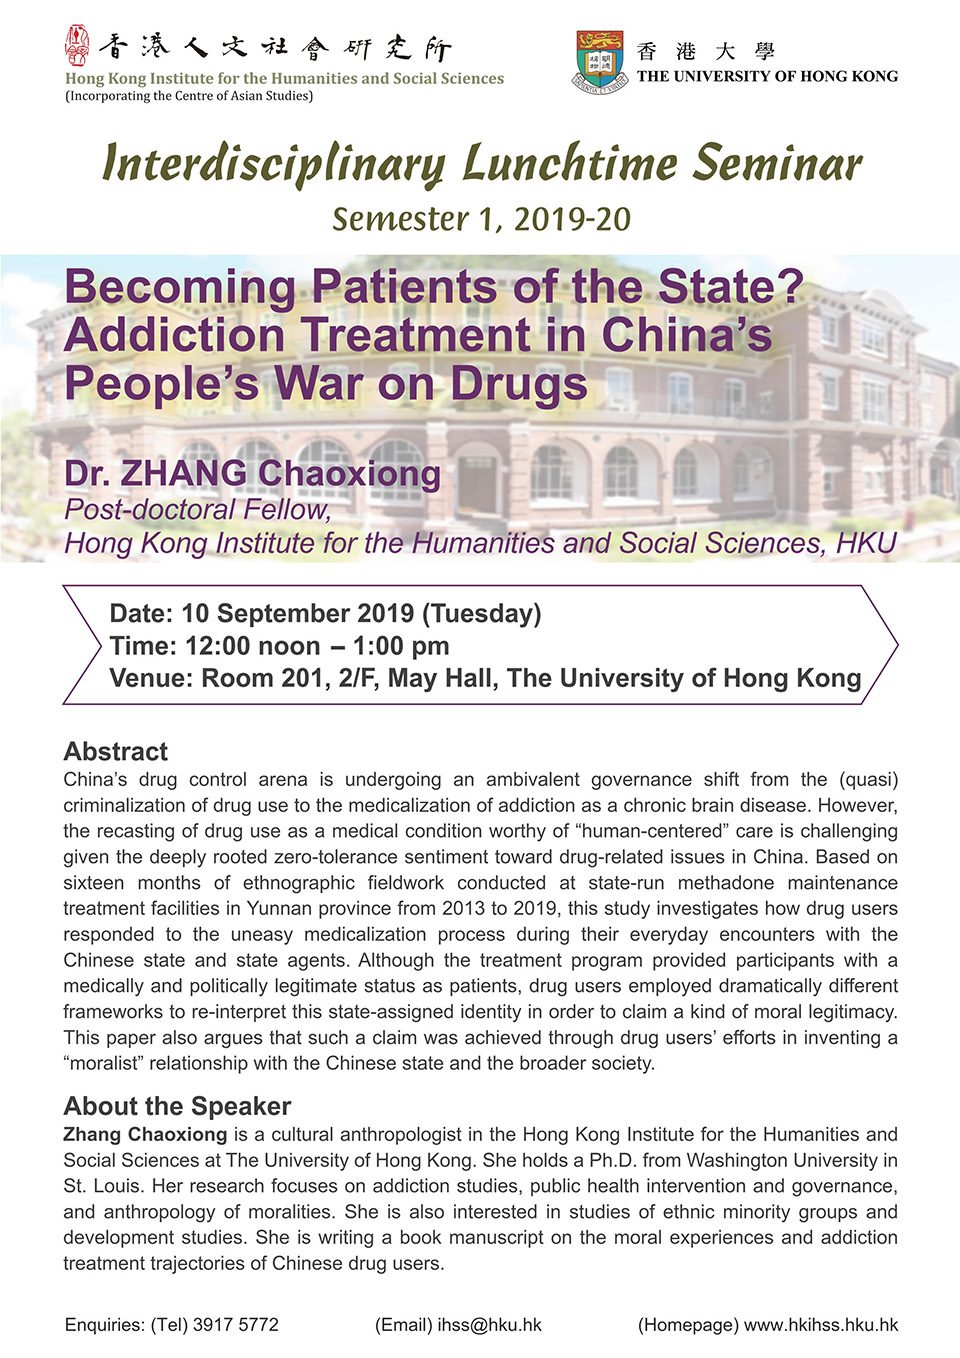 """Interdisciplinary Lunchtime Seminar on """"Becoming Patients of the State? Addiction Treatment in China's People's War on Drugs"""" by Dr. Zhang Chaoxiong (September 10, 2019)"""